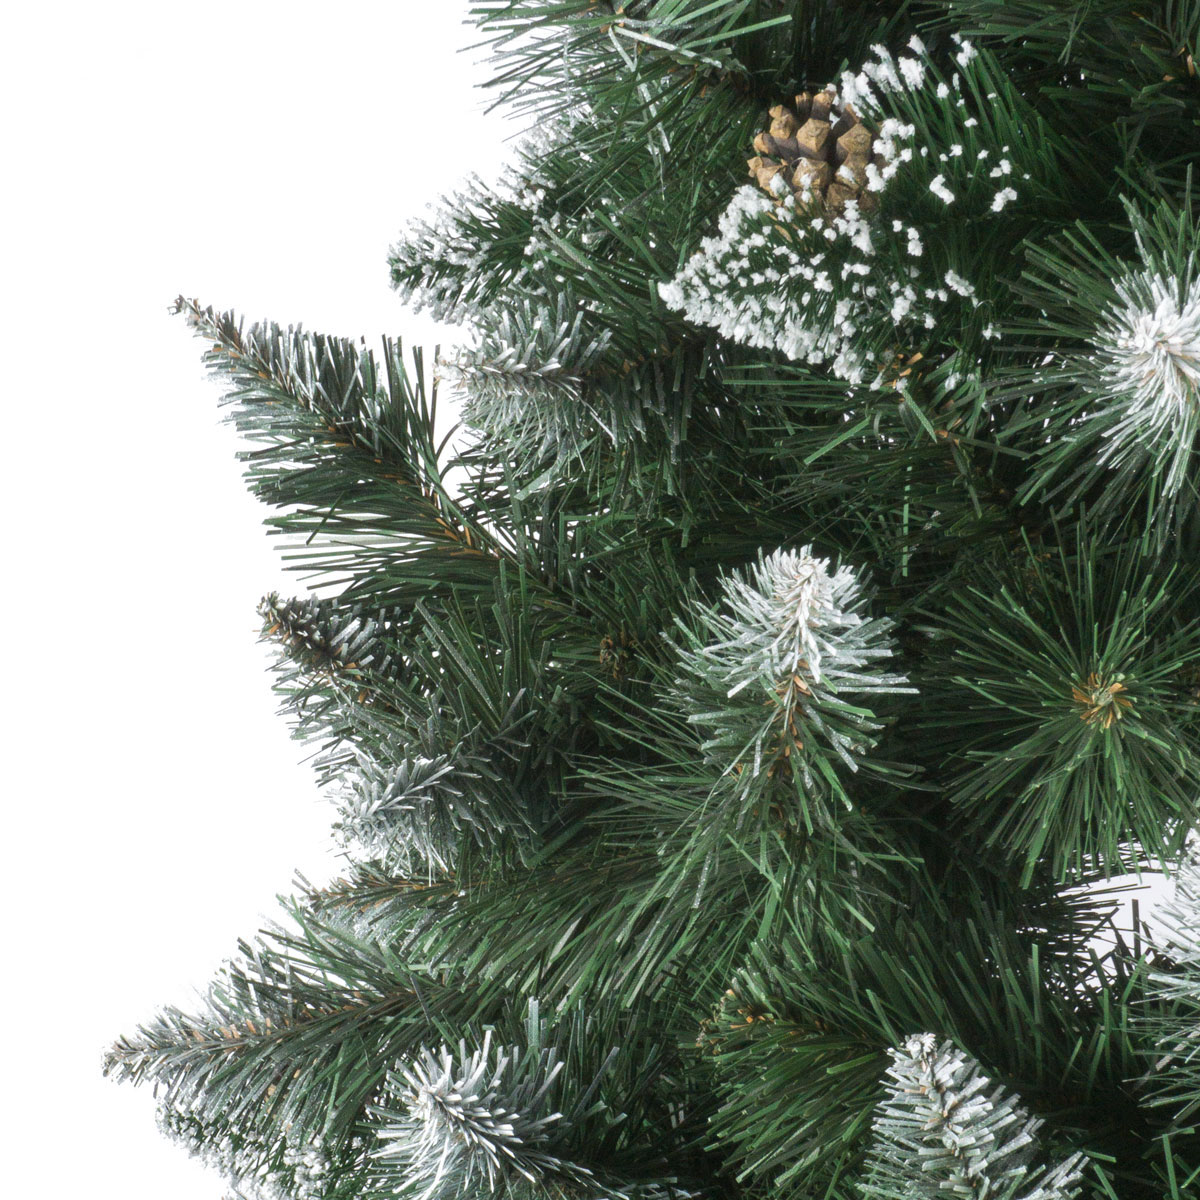 Frosted Slim Christmas Tree: Artificial Christmas Tree Natural White Frosted Pine Slim